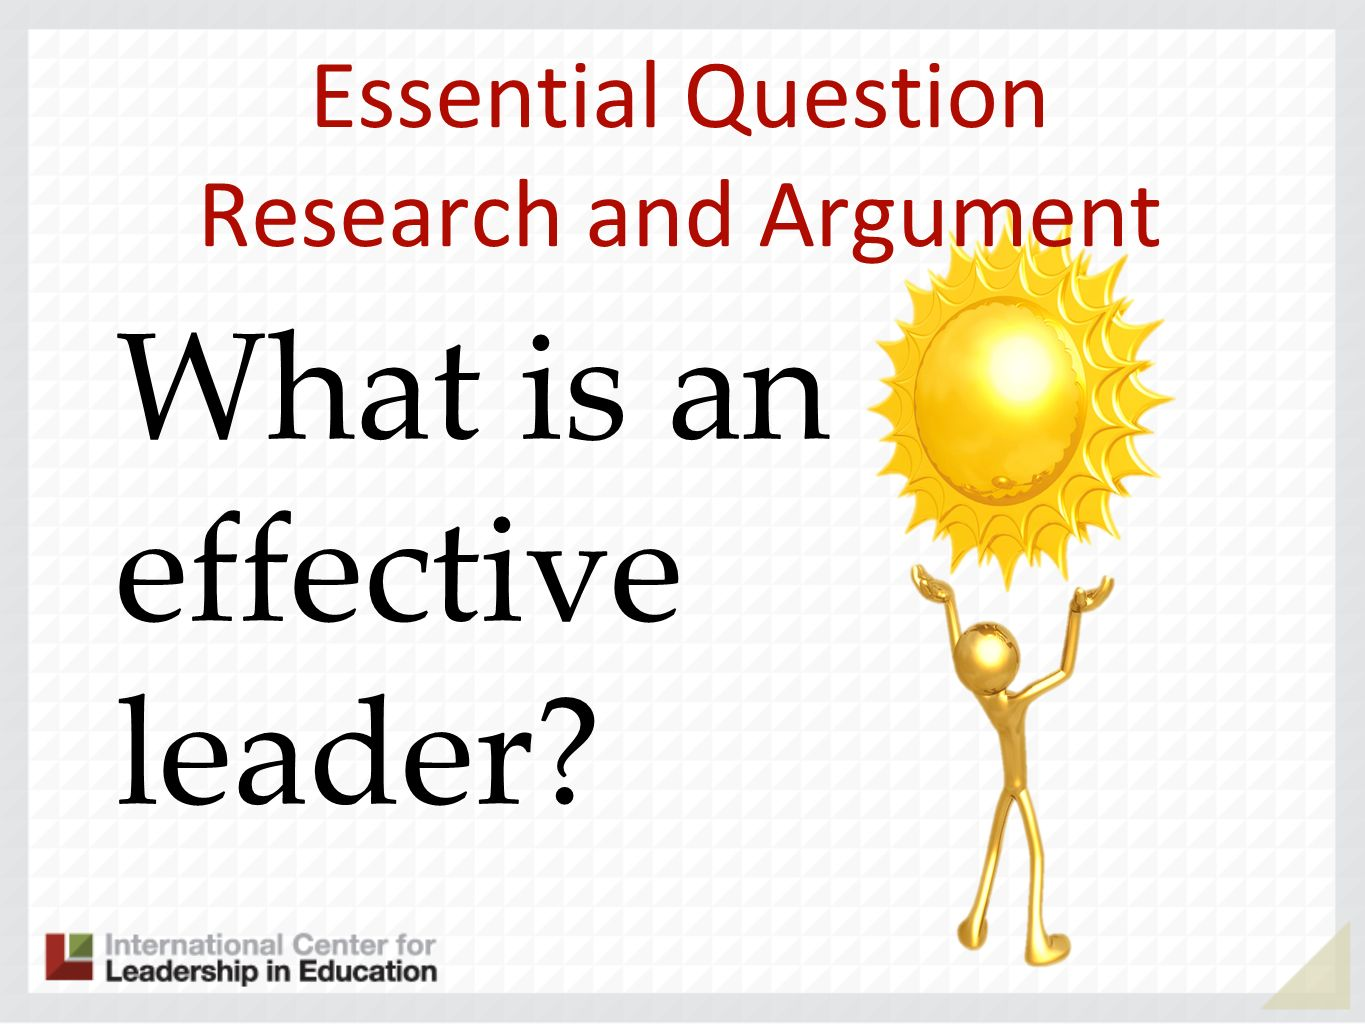 Essential Question Research and Argument What is an effective leader?